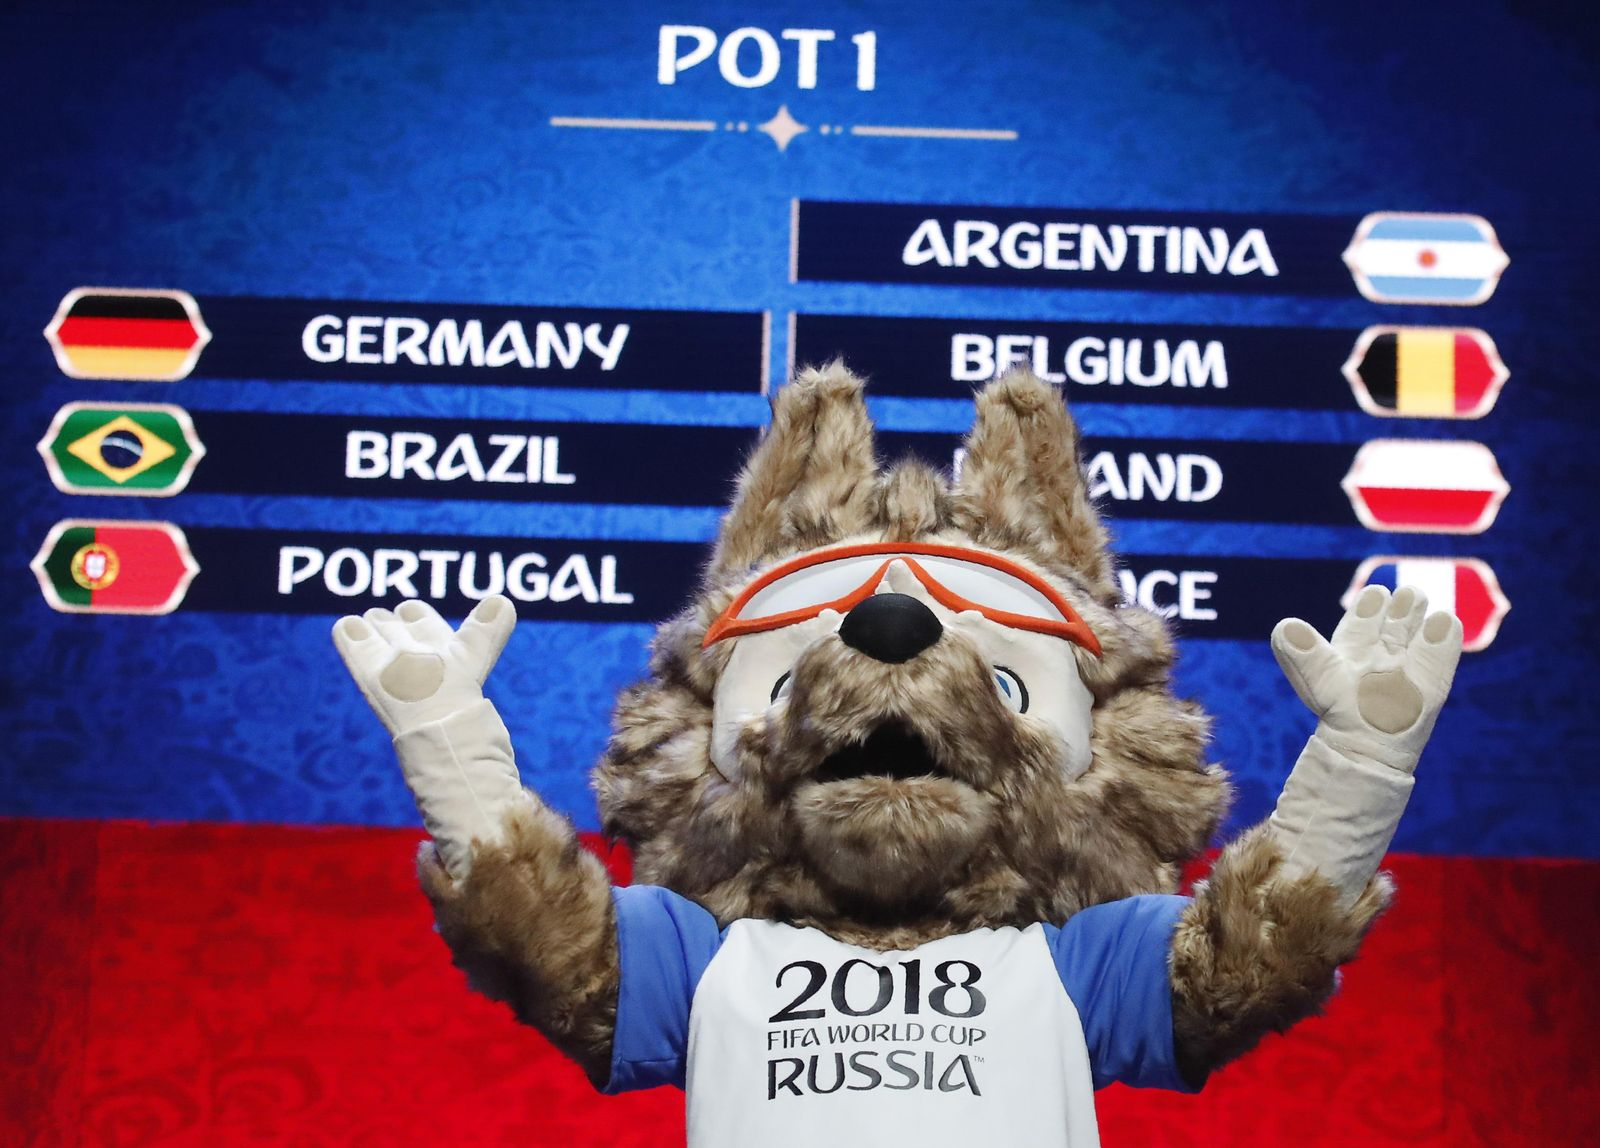 SOCCER-WORLDCUP/DRAW-PREVIEW